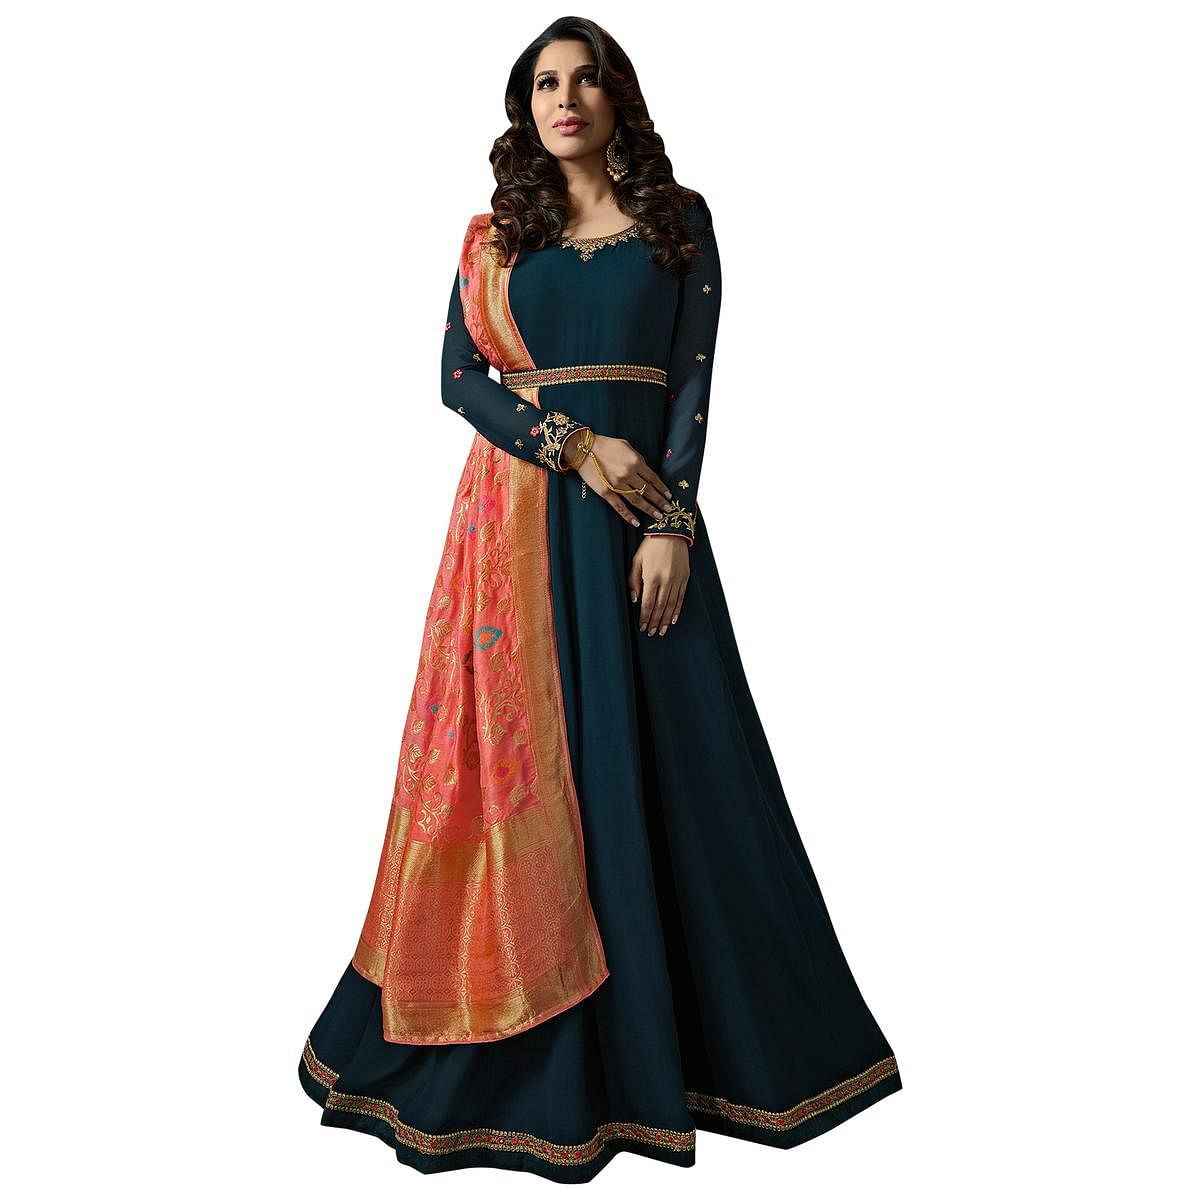 Attractive Teal Blue Colored Embroidered Georgette Anarkali Suit With Pure Banarasi Silk Dupatta